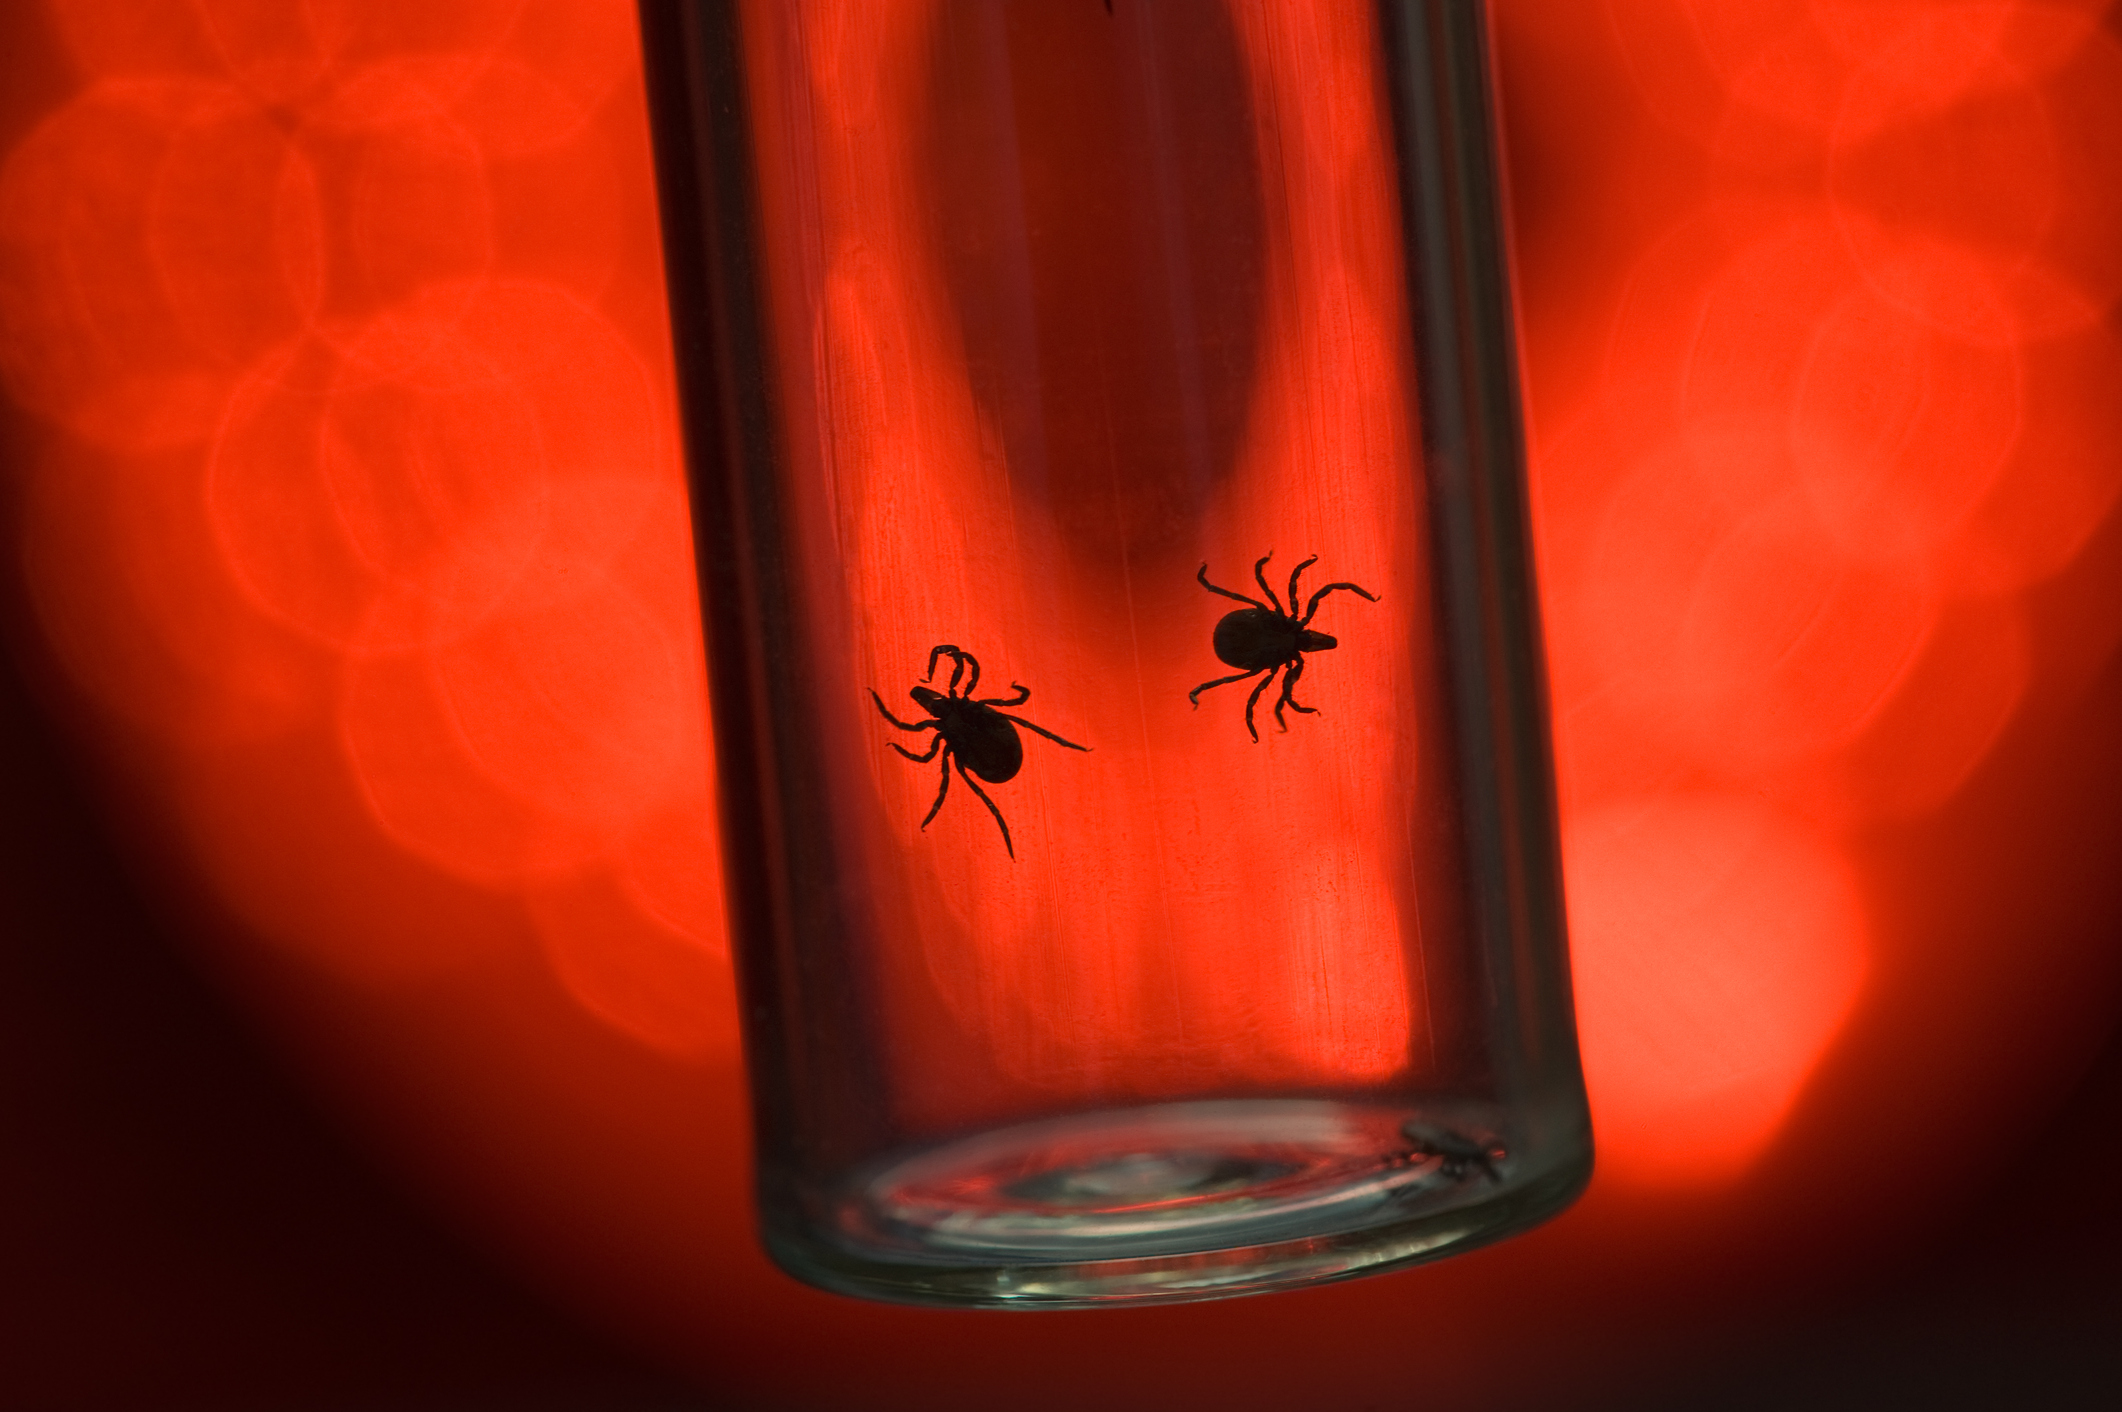 In 2013, there was a Lyme disease outbreak in Kerala that took the life of a 50-year-old woman